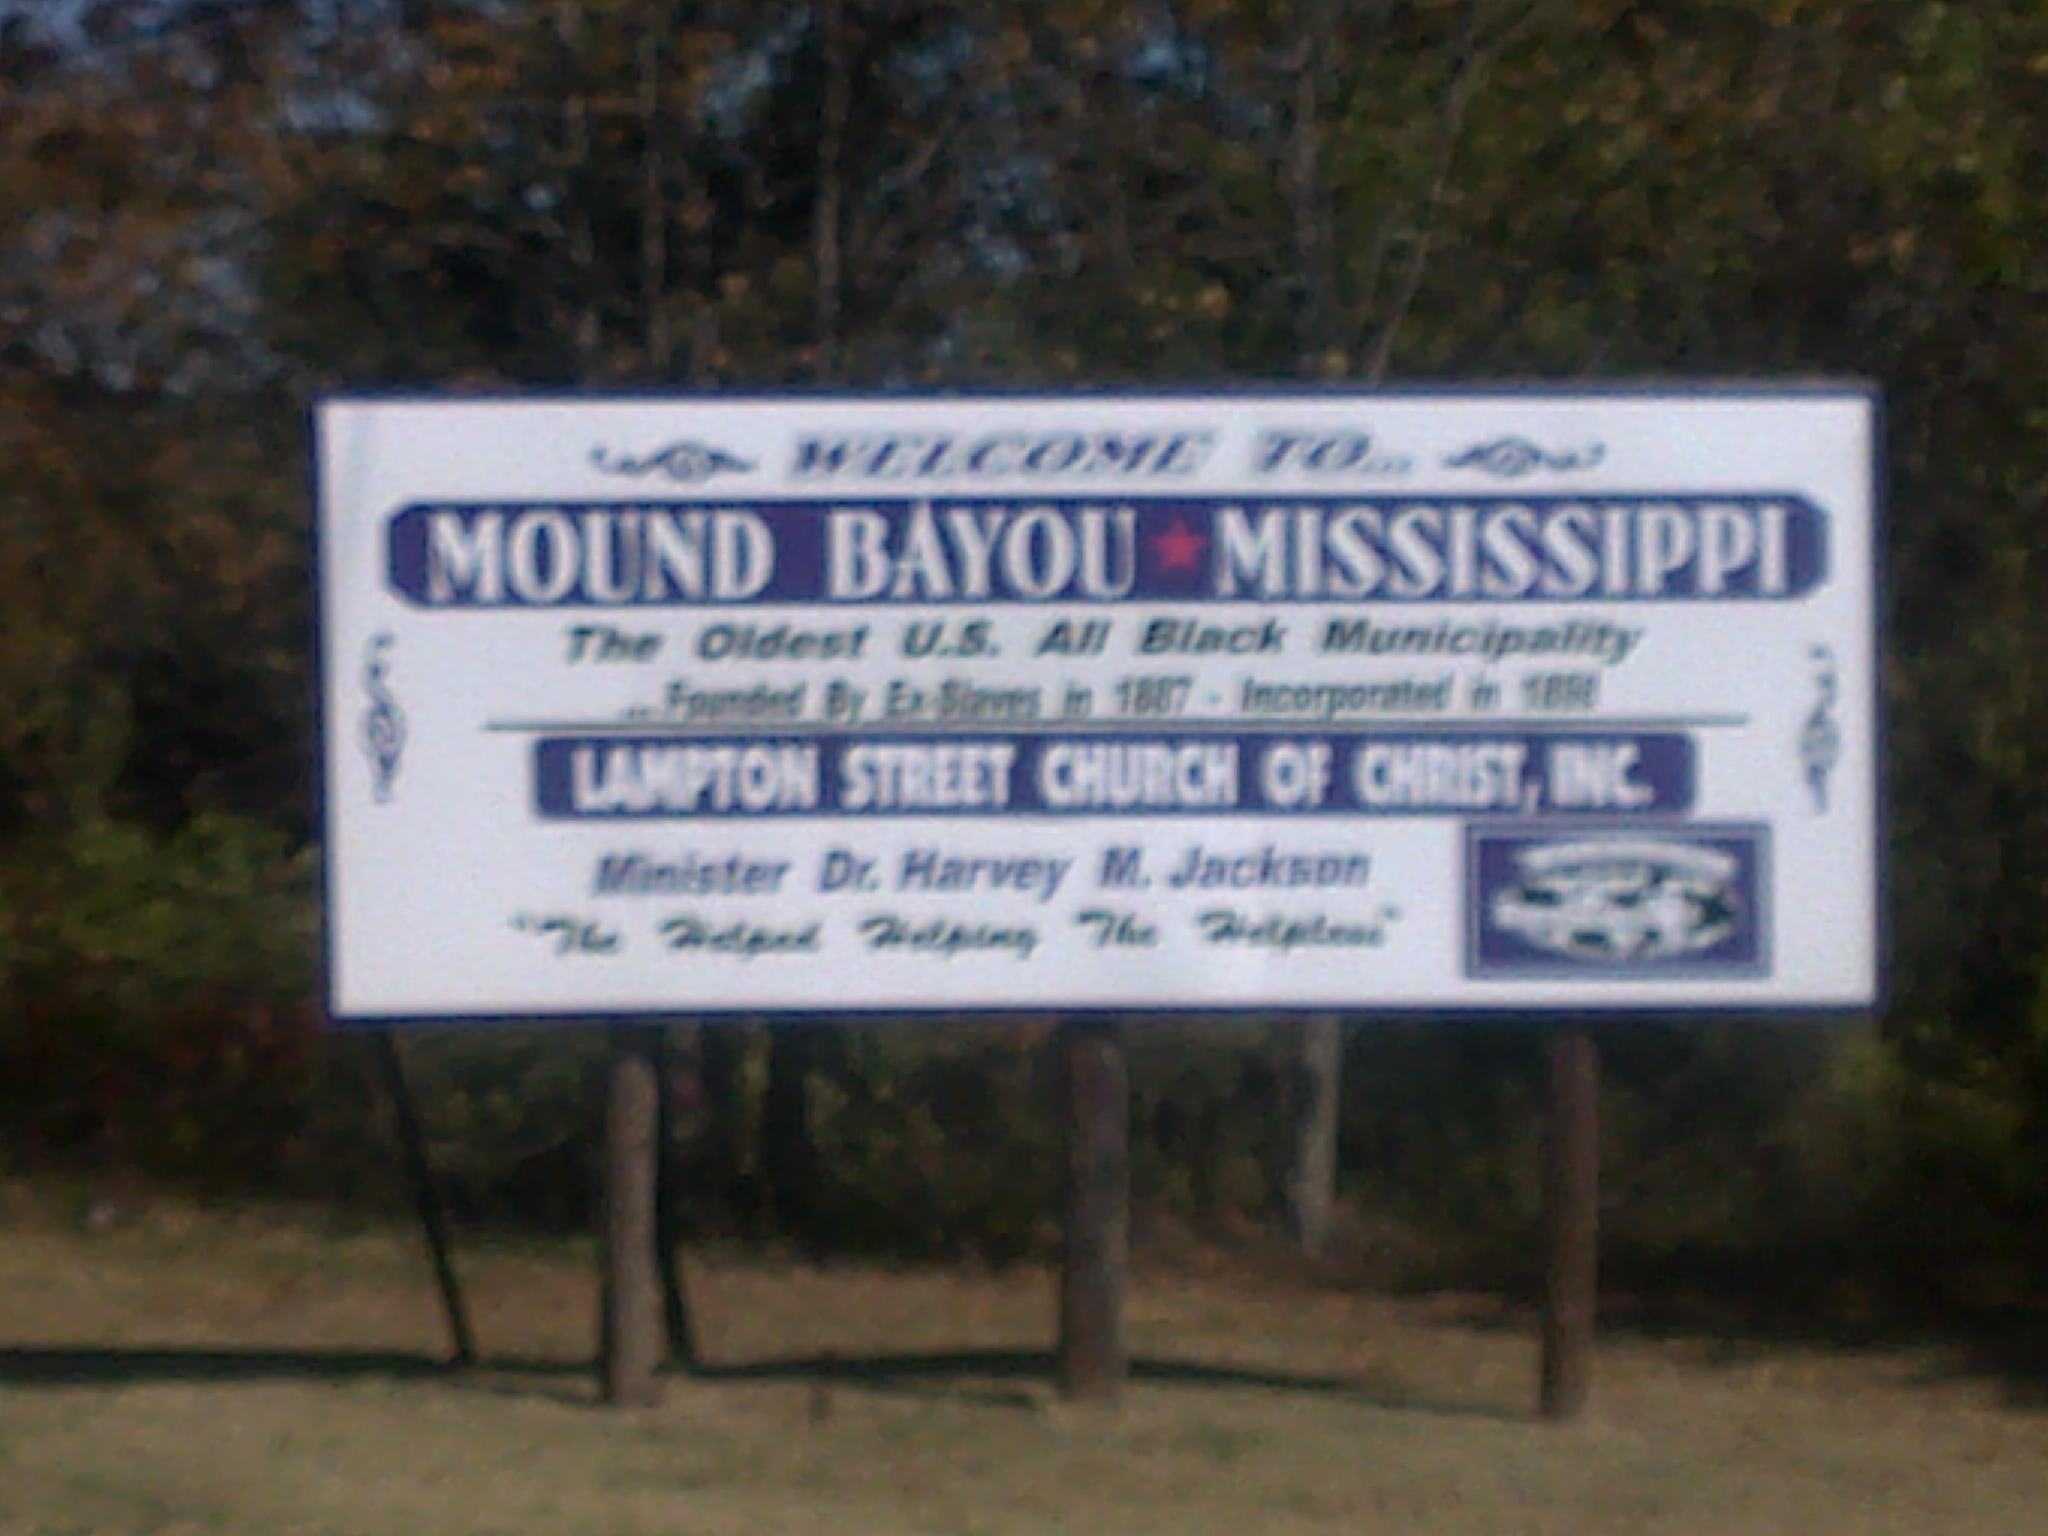 Mound bayou funeral homes funeral services flowers in mississippi location of mound bayou in mississippi izmirmasajfo